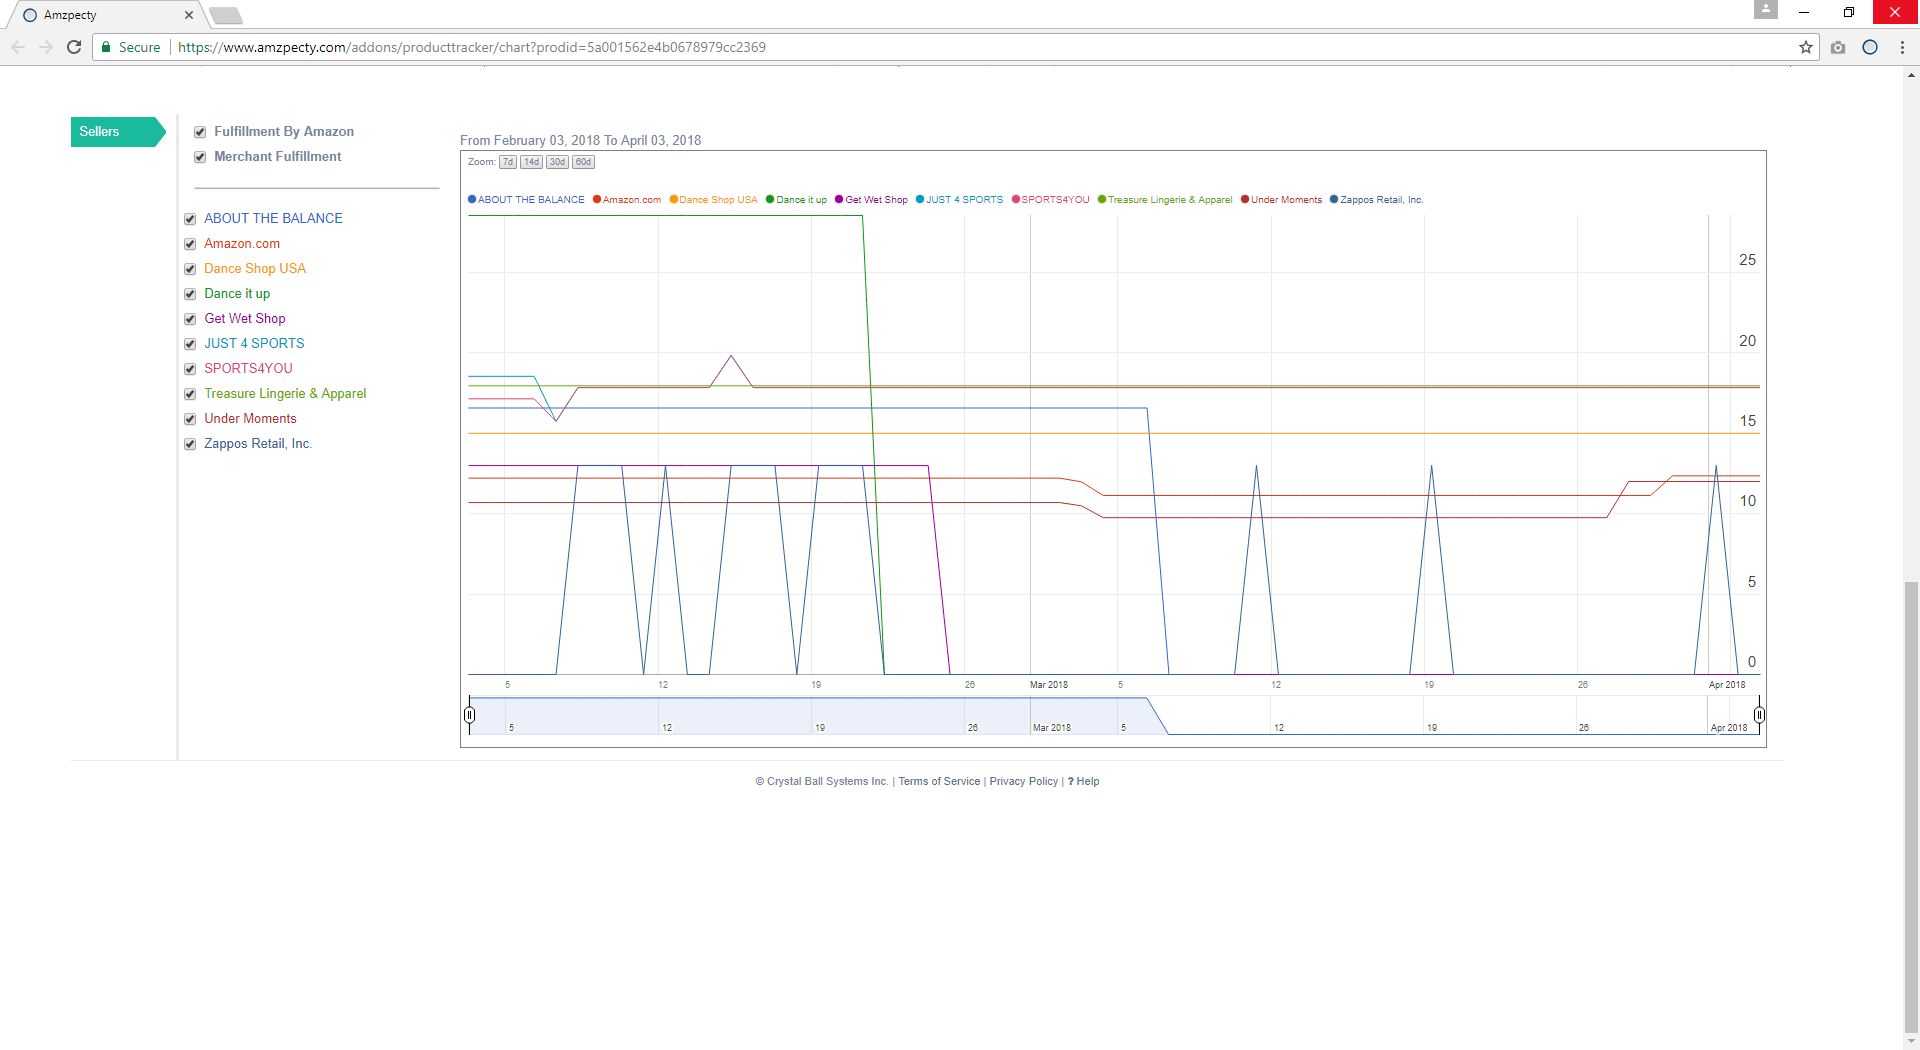 Amazon Daily Product Snapshot Graphical Seller Price Trend Showcase